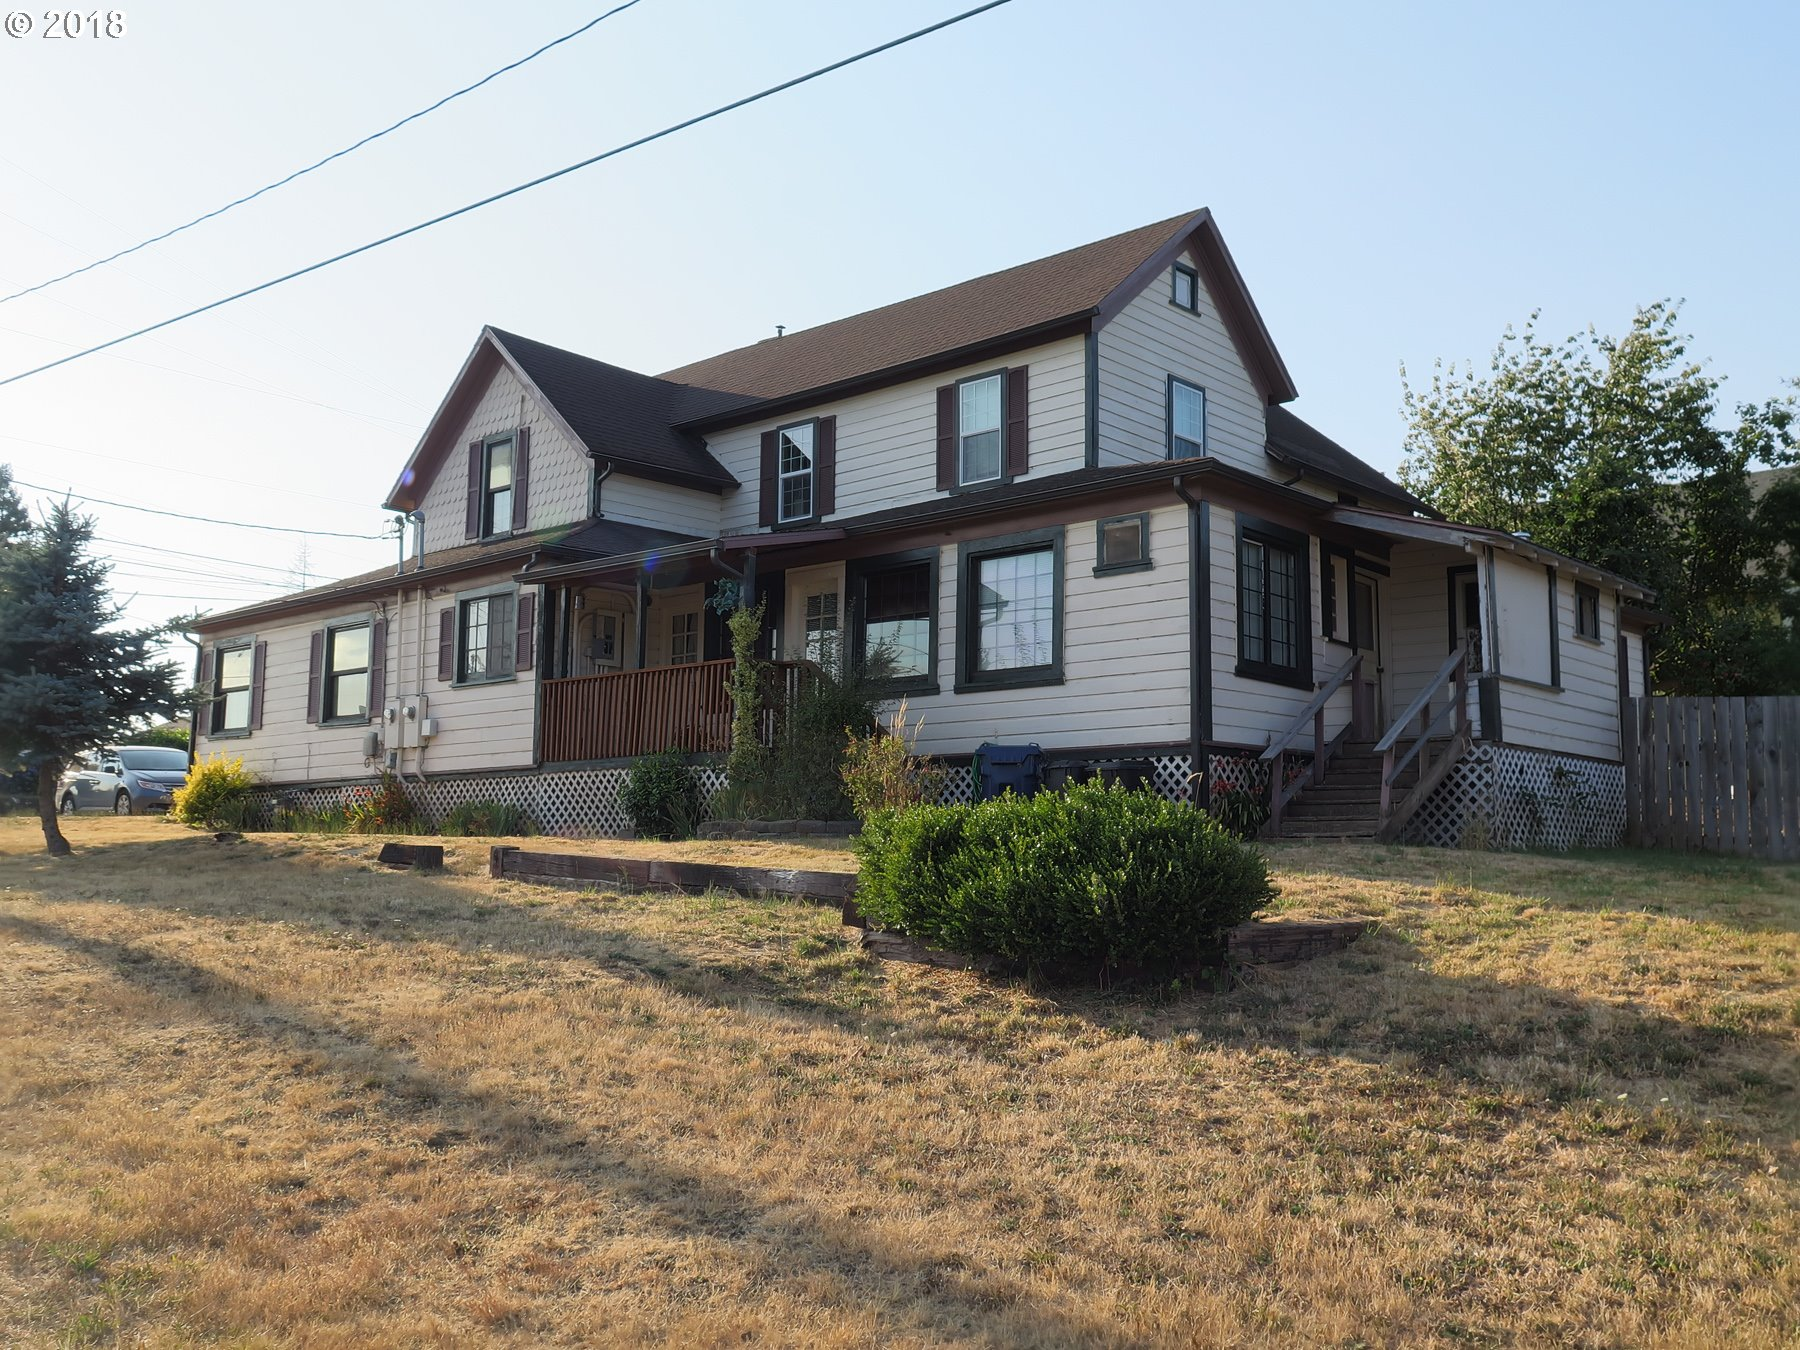 Photo of 626 N COLLIER ST Coquille OR 97423